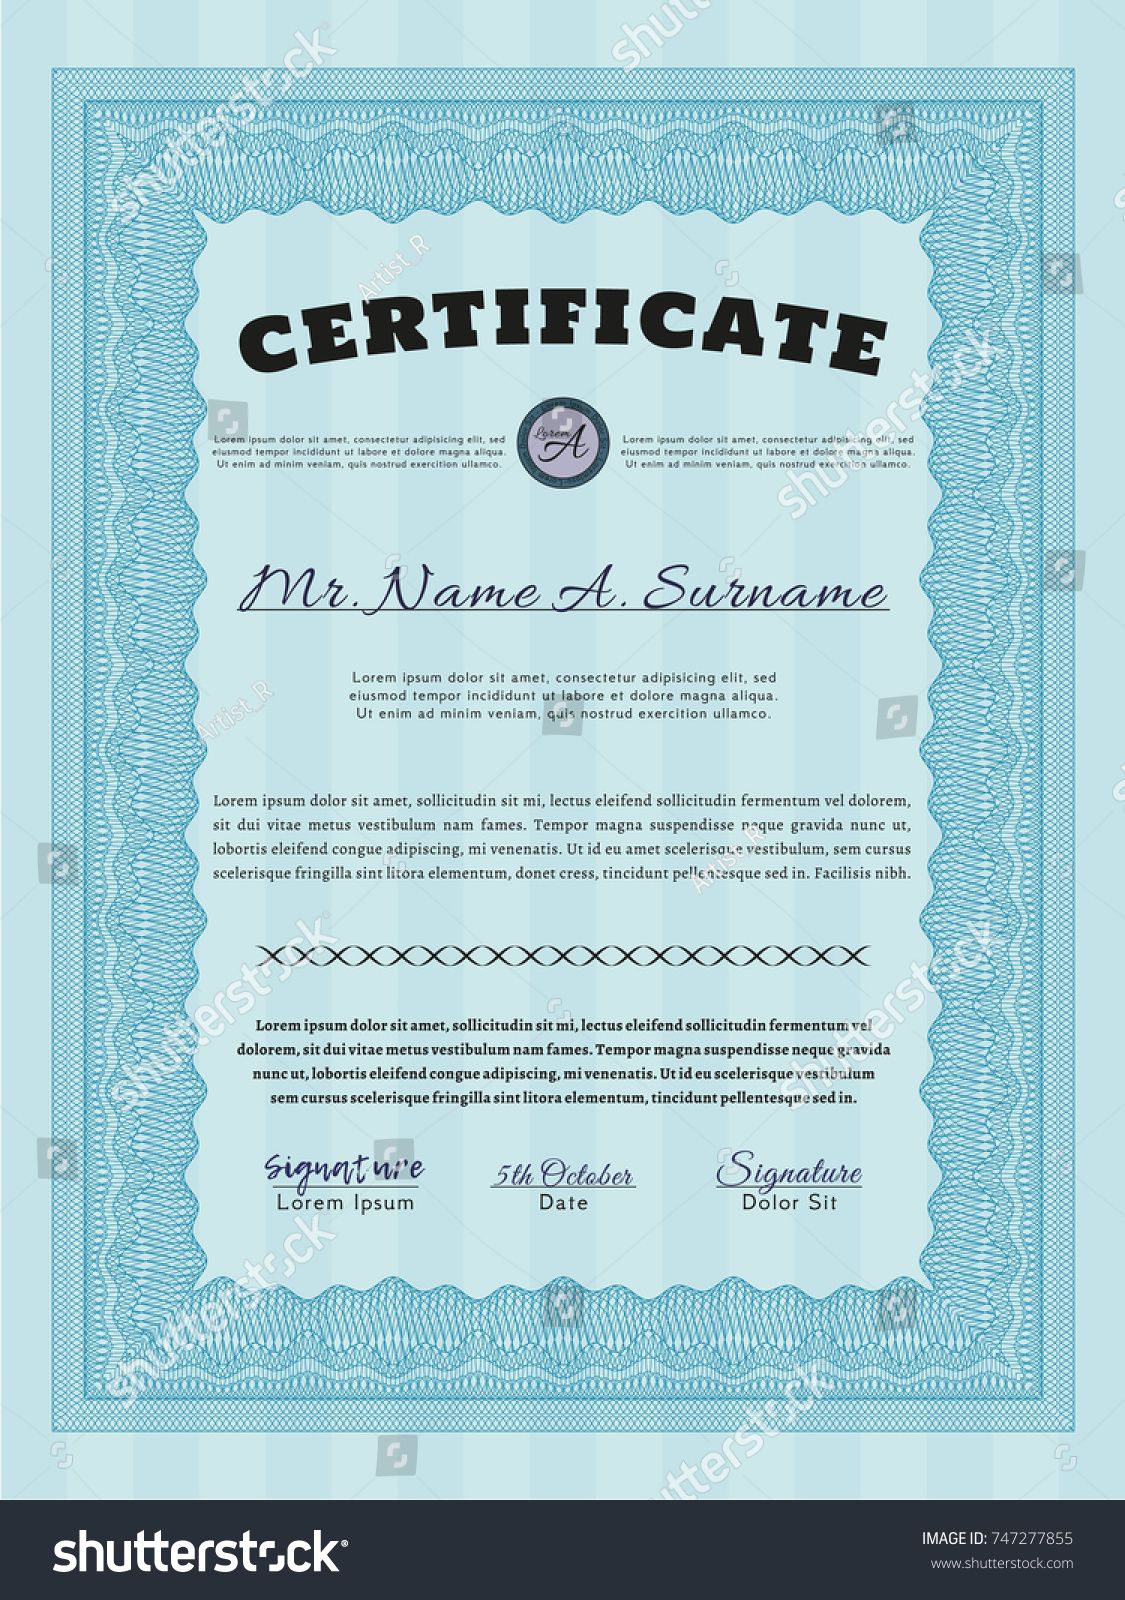 Swimming certificate templates image collections templates ymca certificate template image collections certificate design swimming certificate templates image collections templates ymca certificate template xflitez Gallery